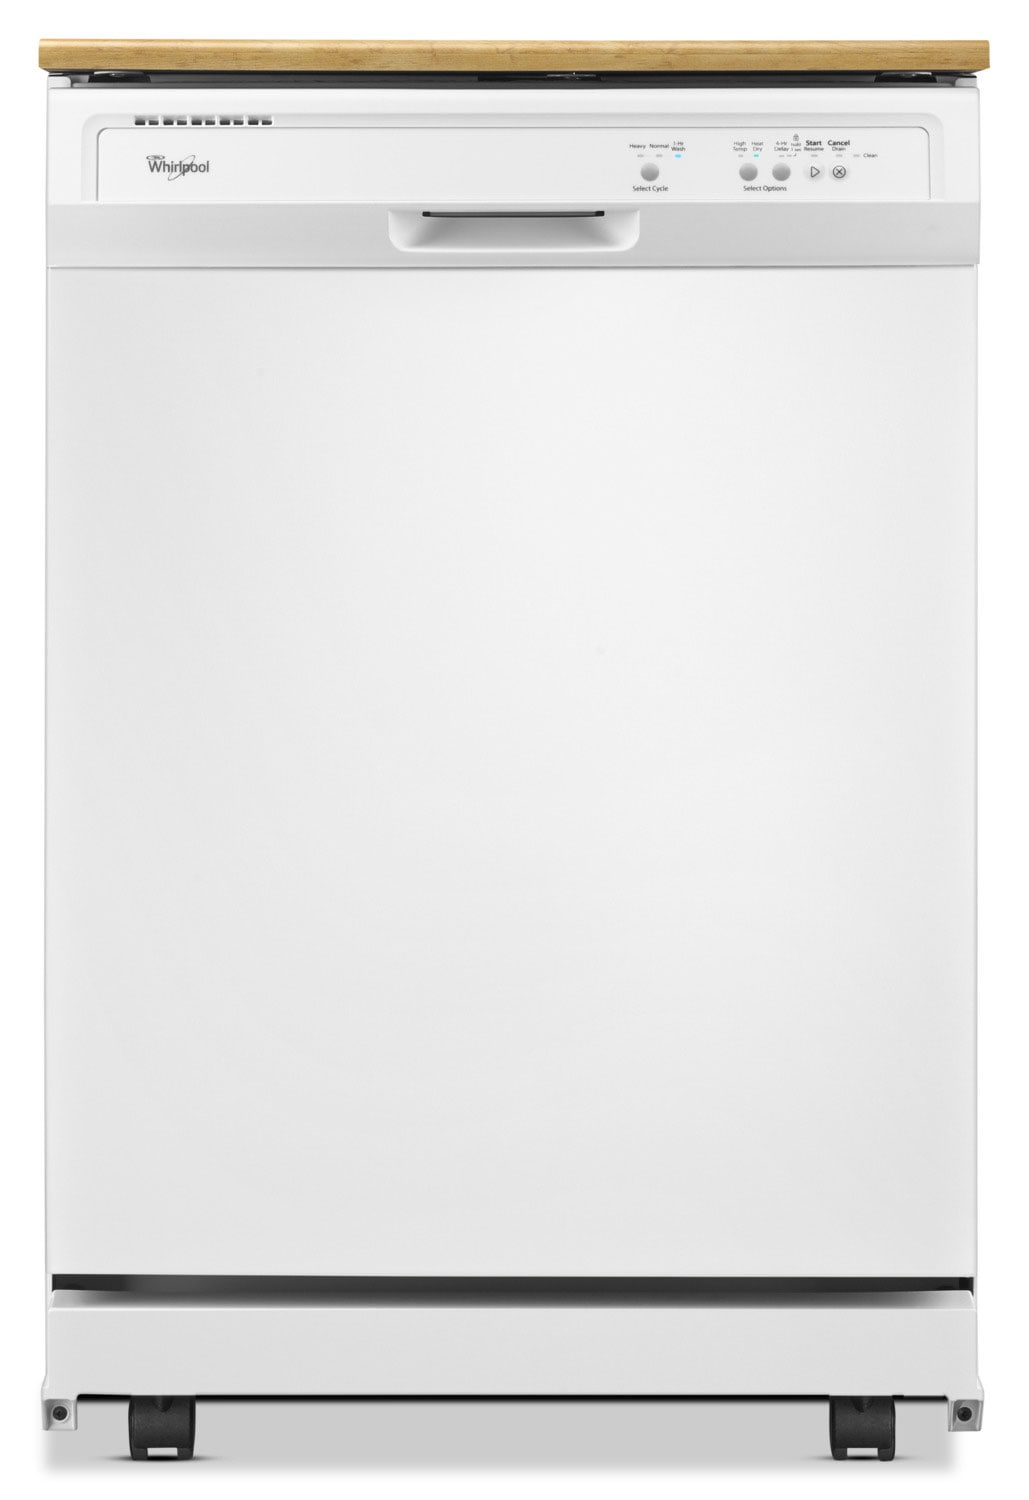 Whirlpool Portable Dishwasher – WDP340PAFW